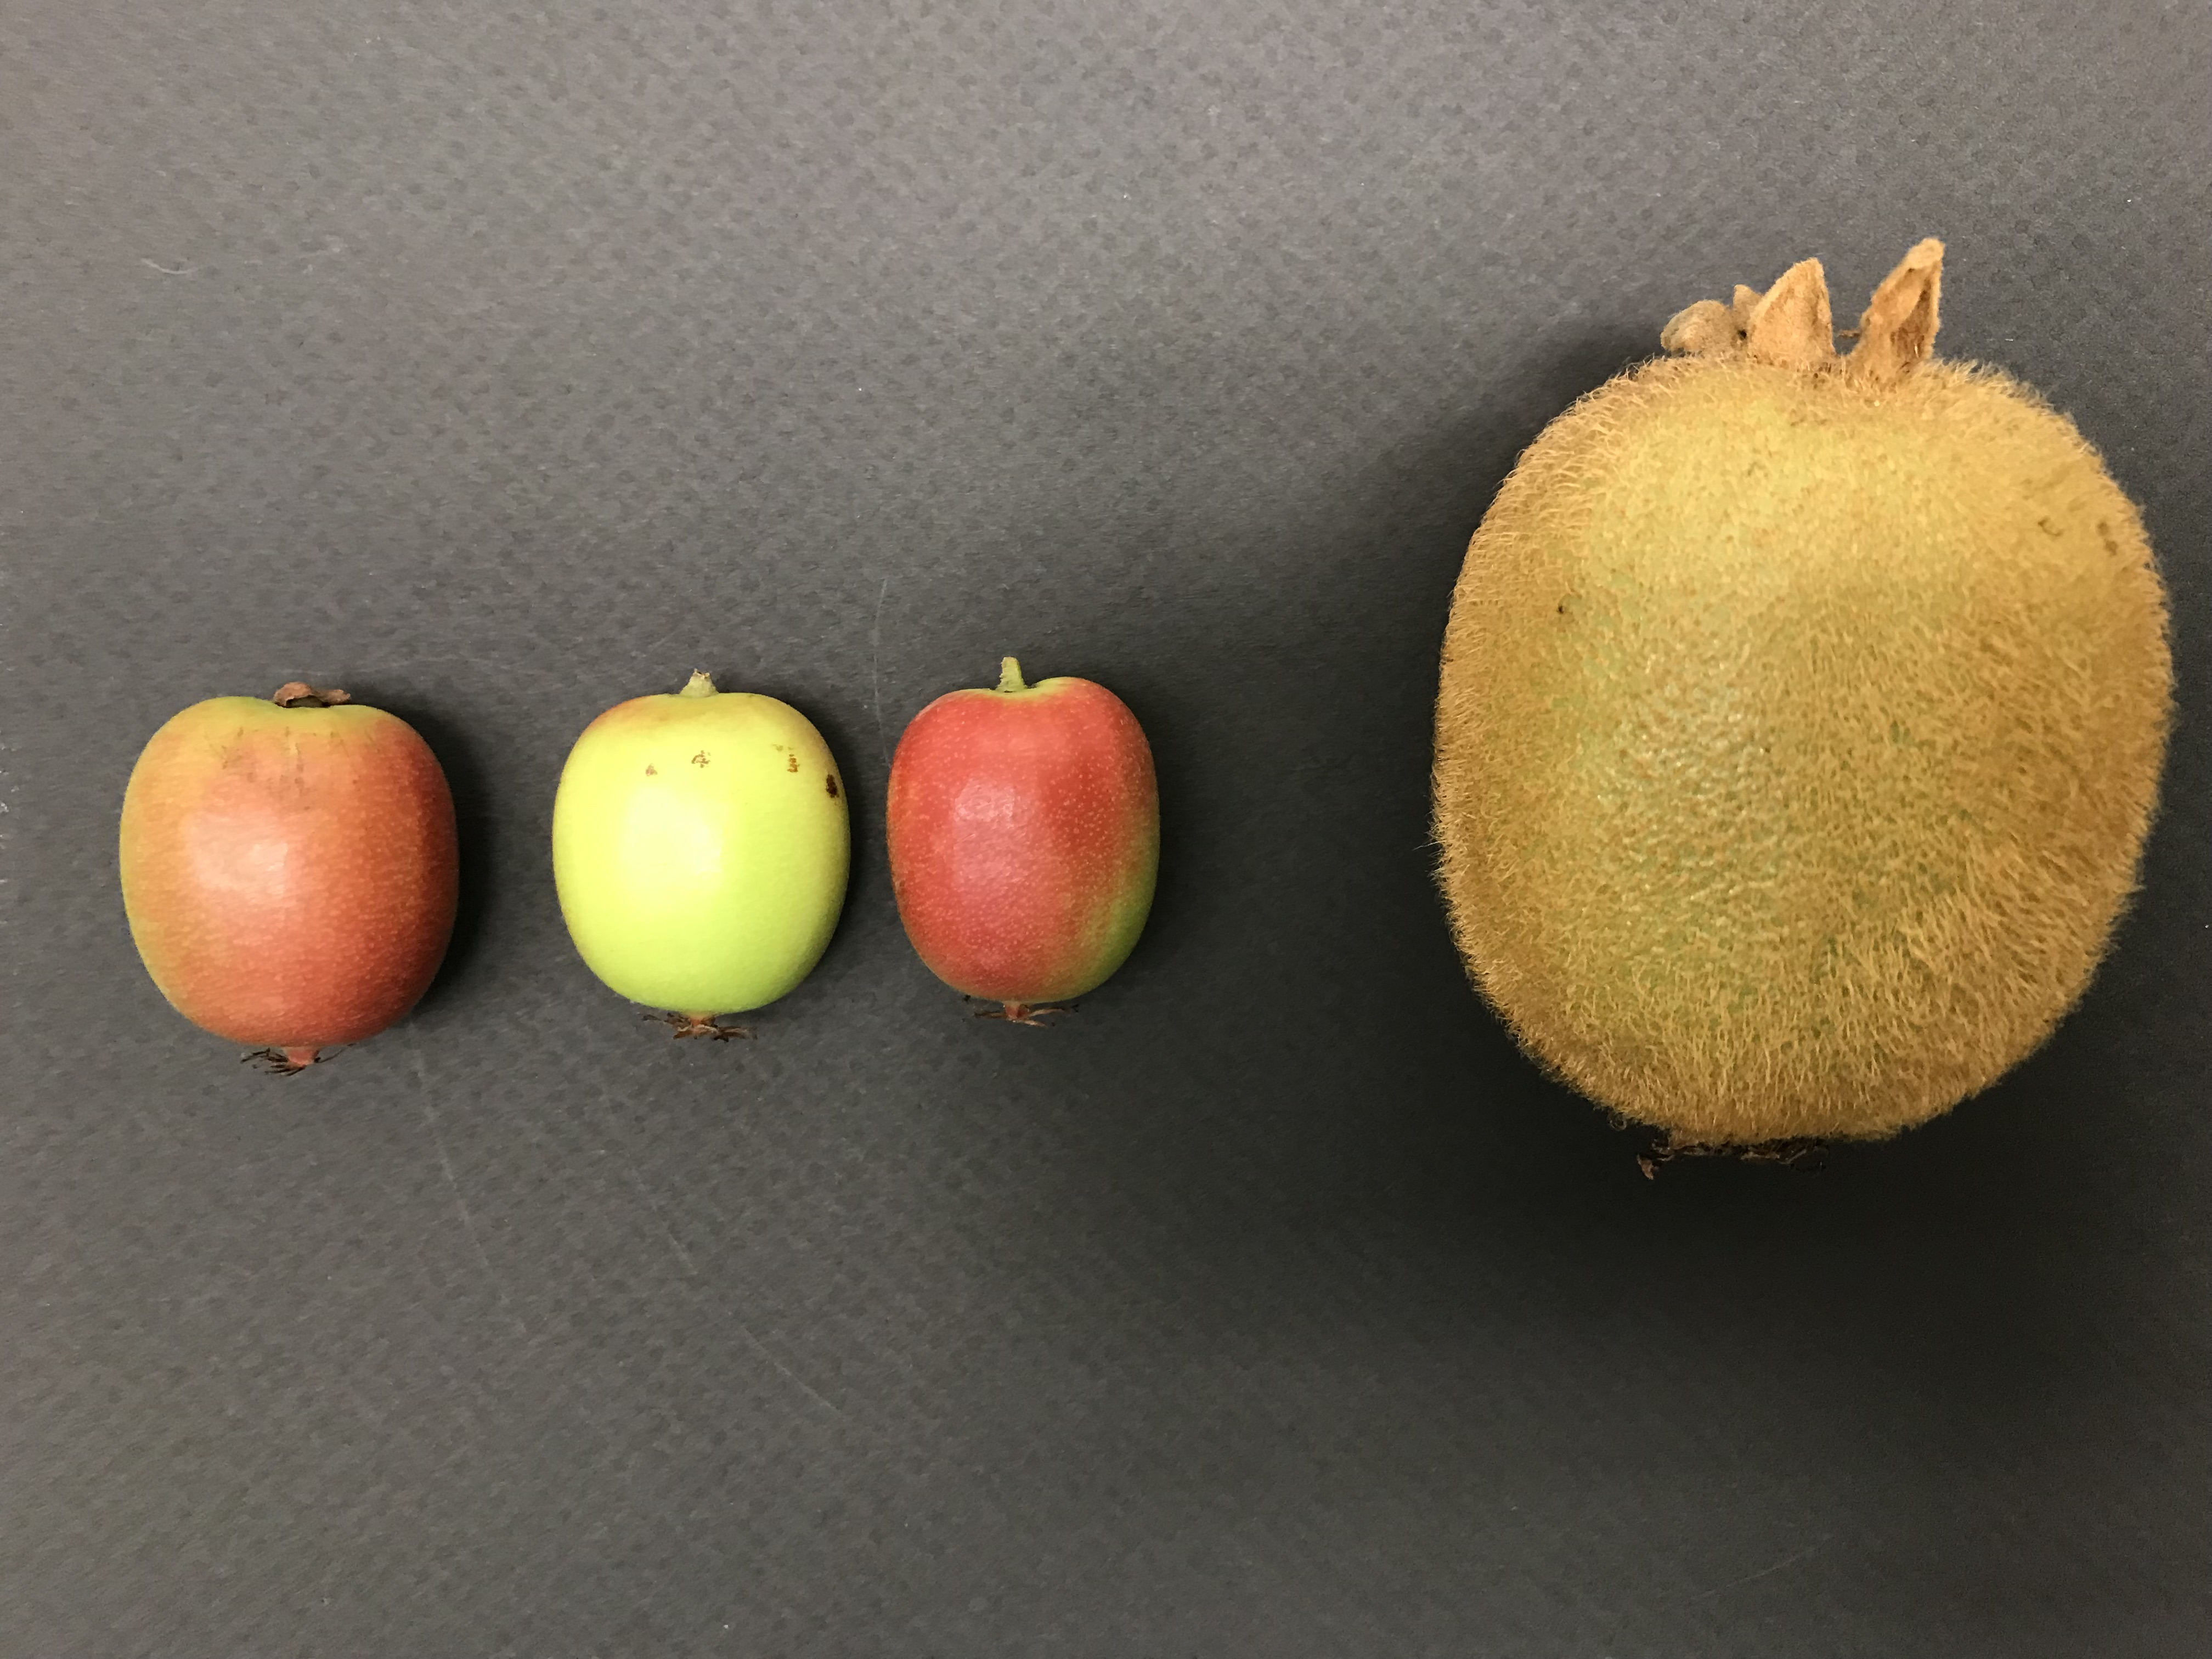 3 small Kiwiberries, 1 large kiwifruit